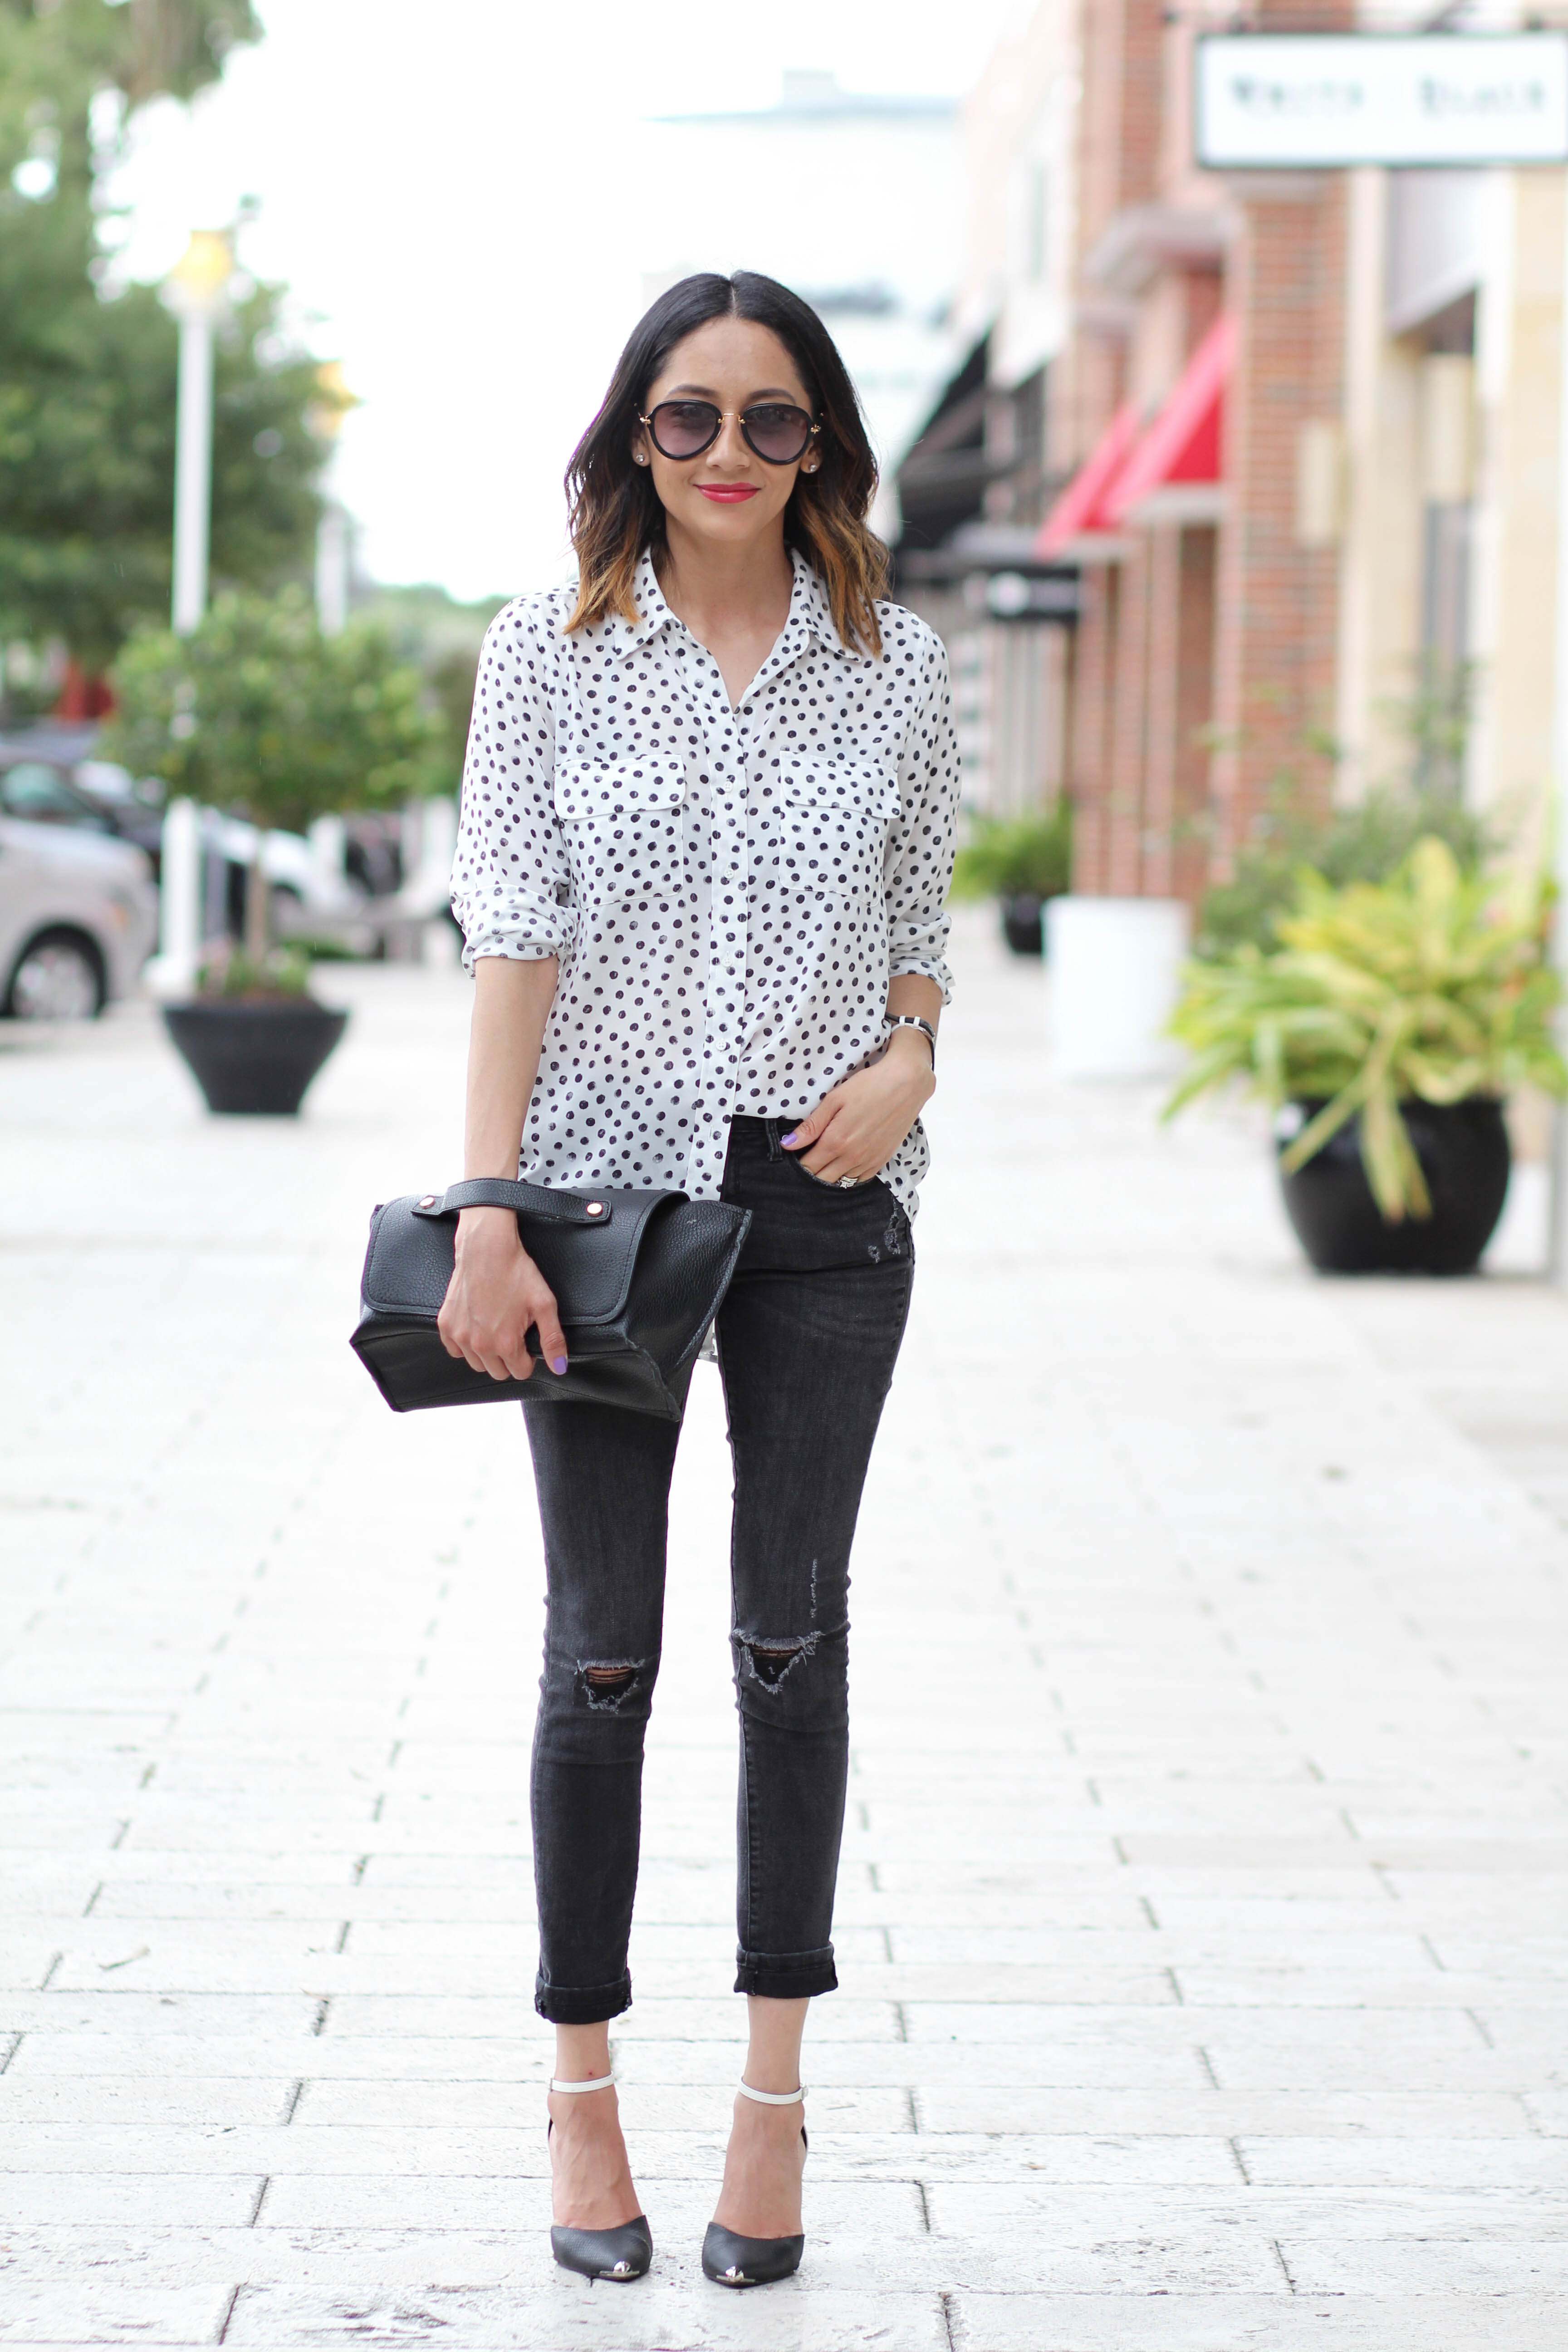 Casual Look   Polka Dotted Top   Black Skinny Jeans